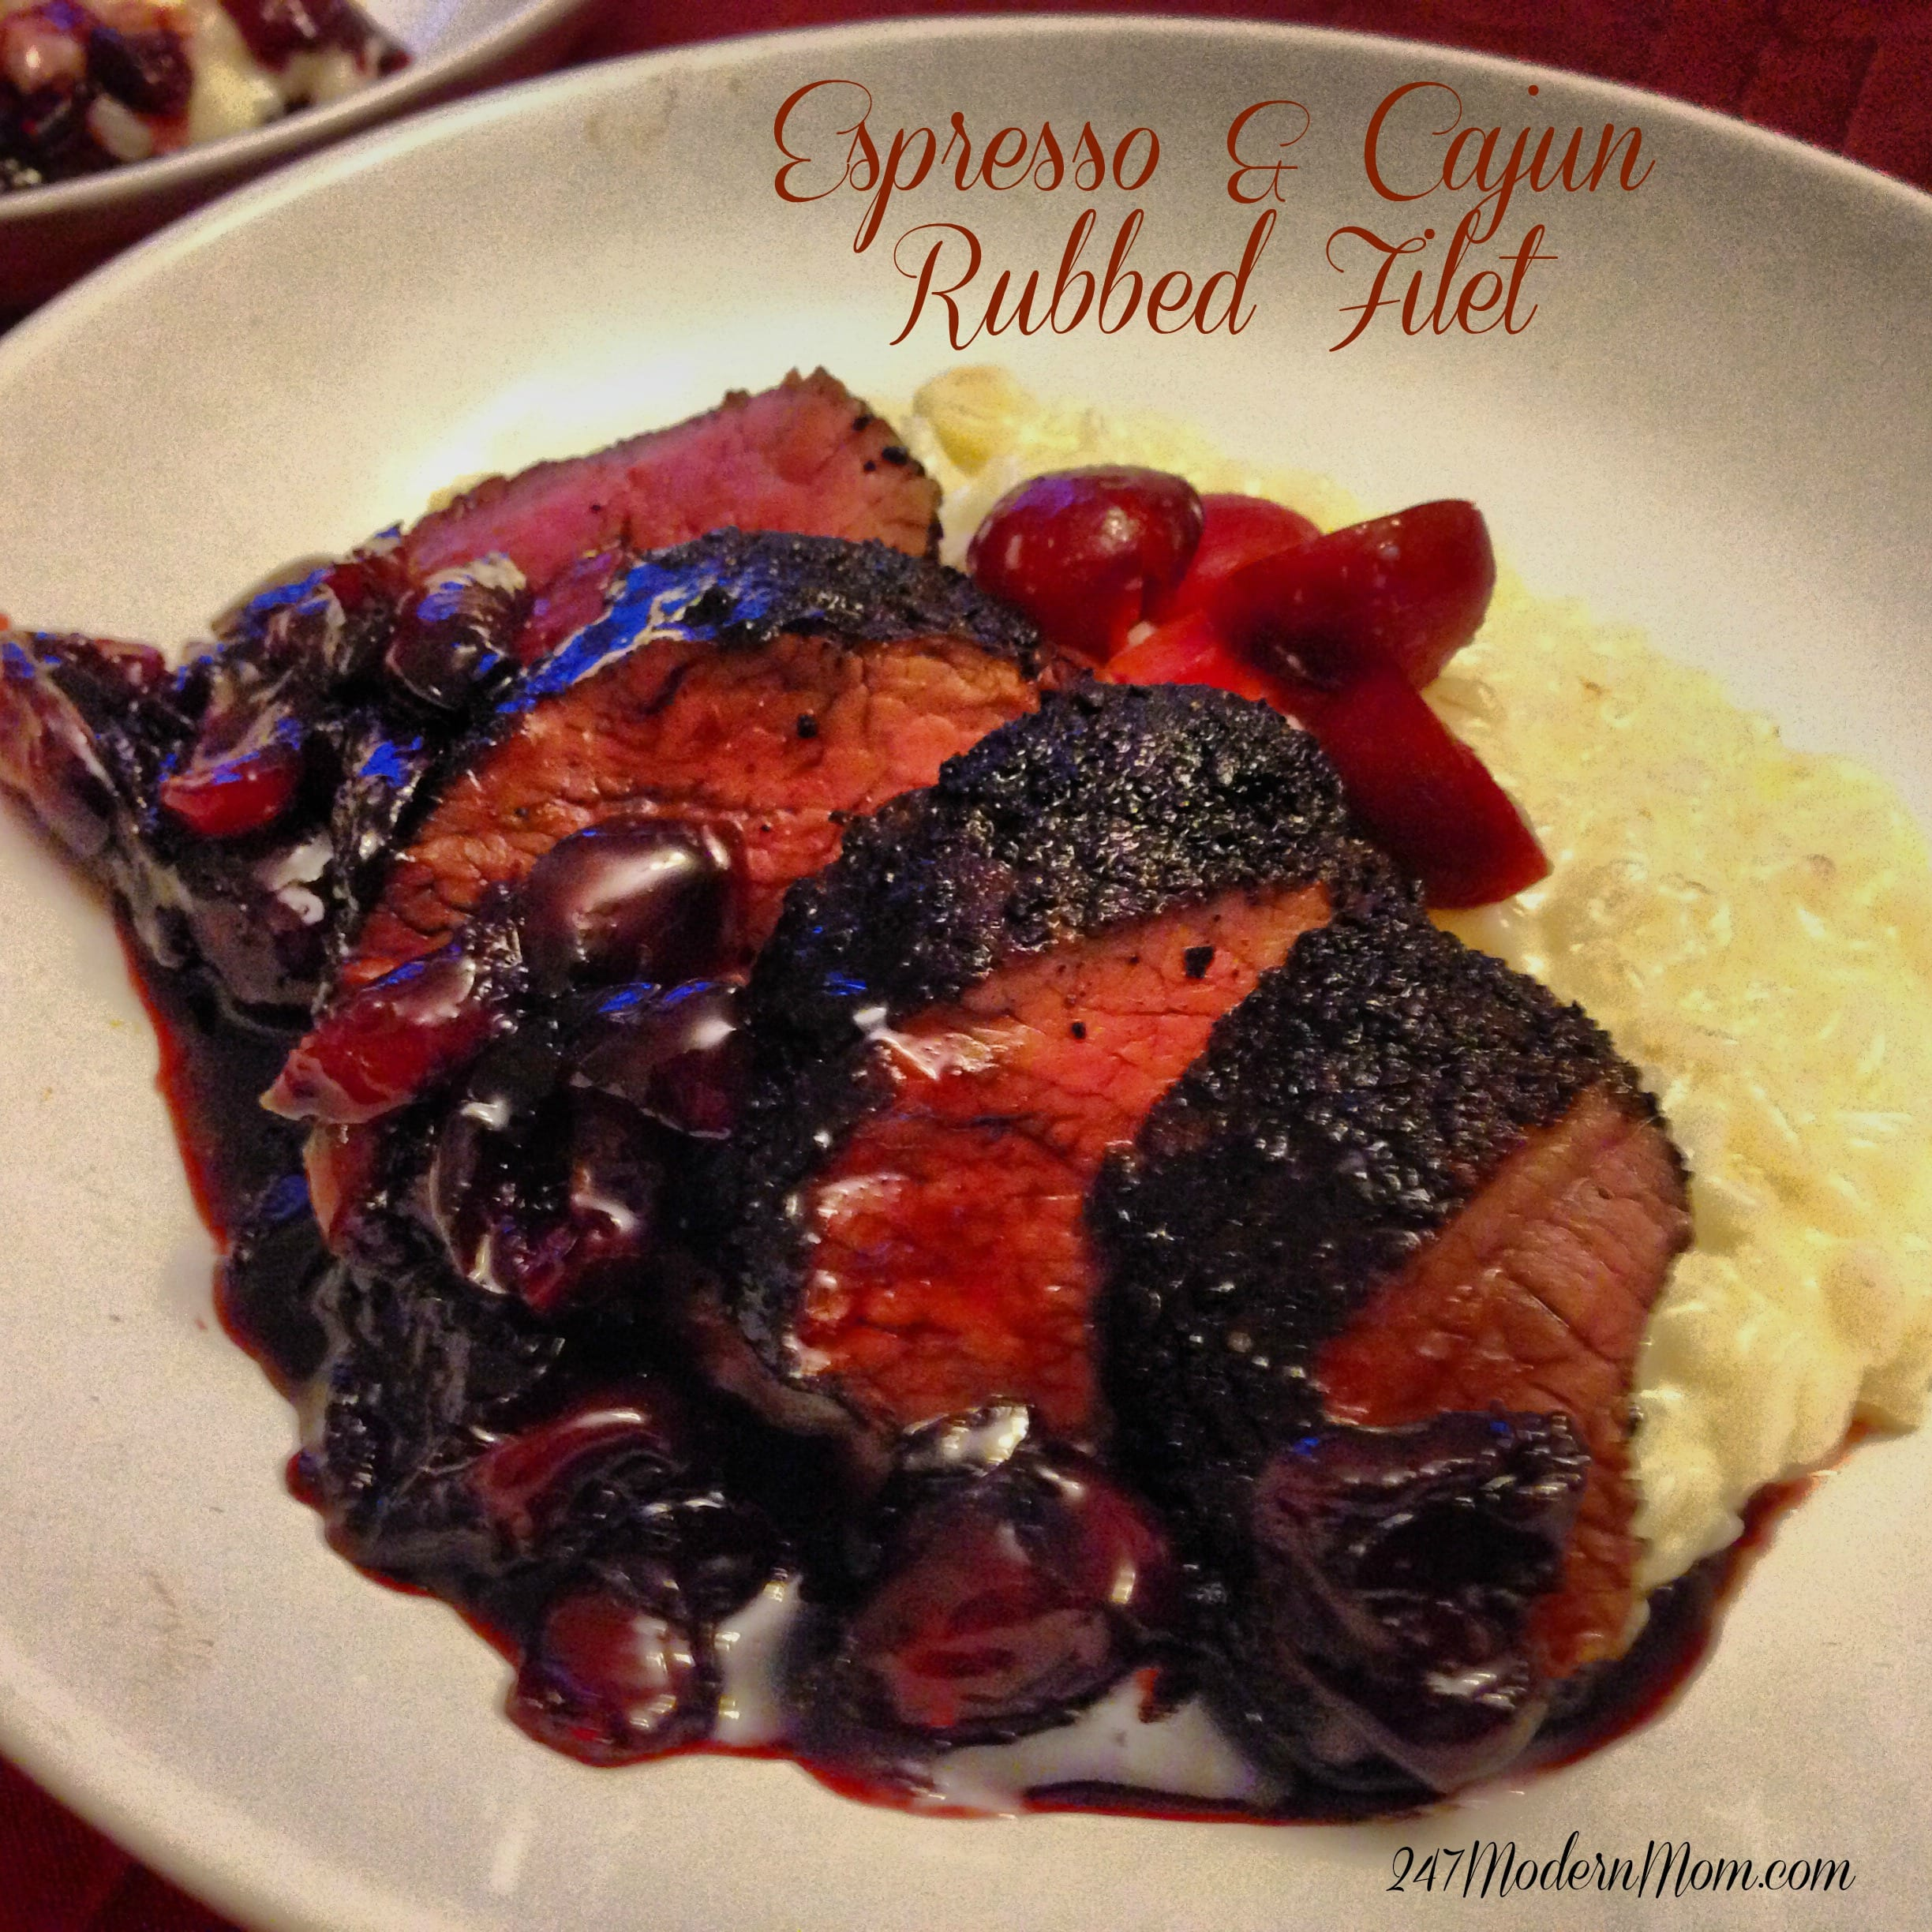 Espresso & Cajun Rubbed Filet with White Chocolate Risotto & Port Cherry Pan Sauce